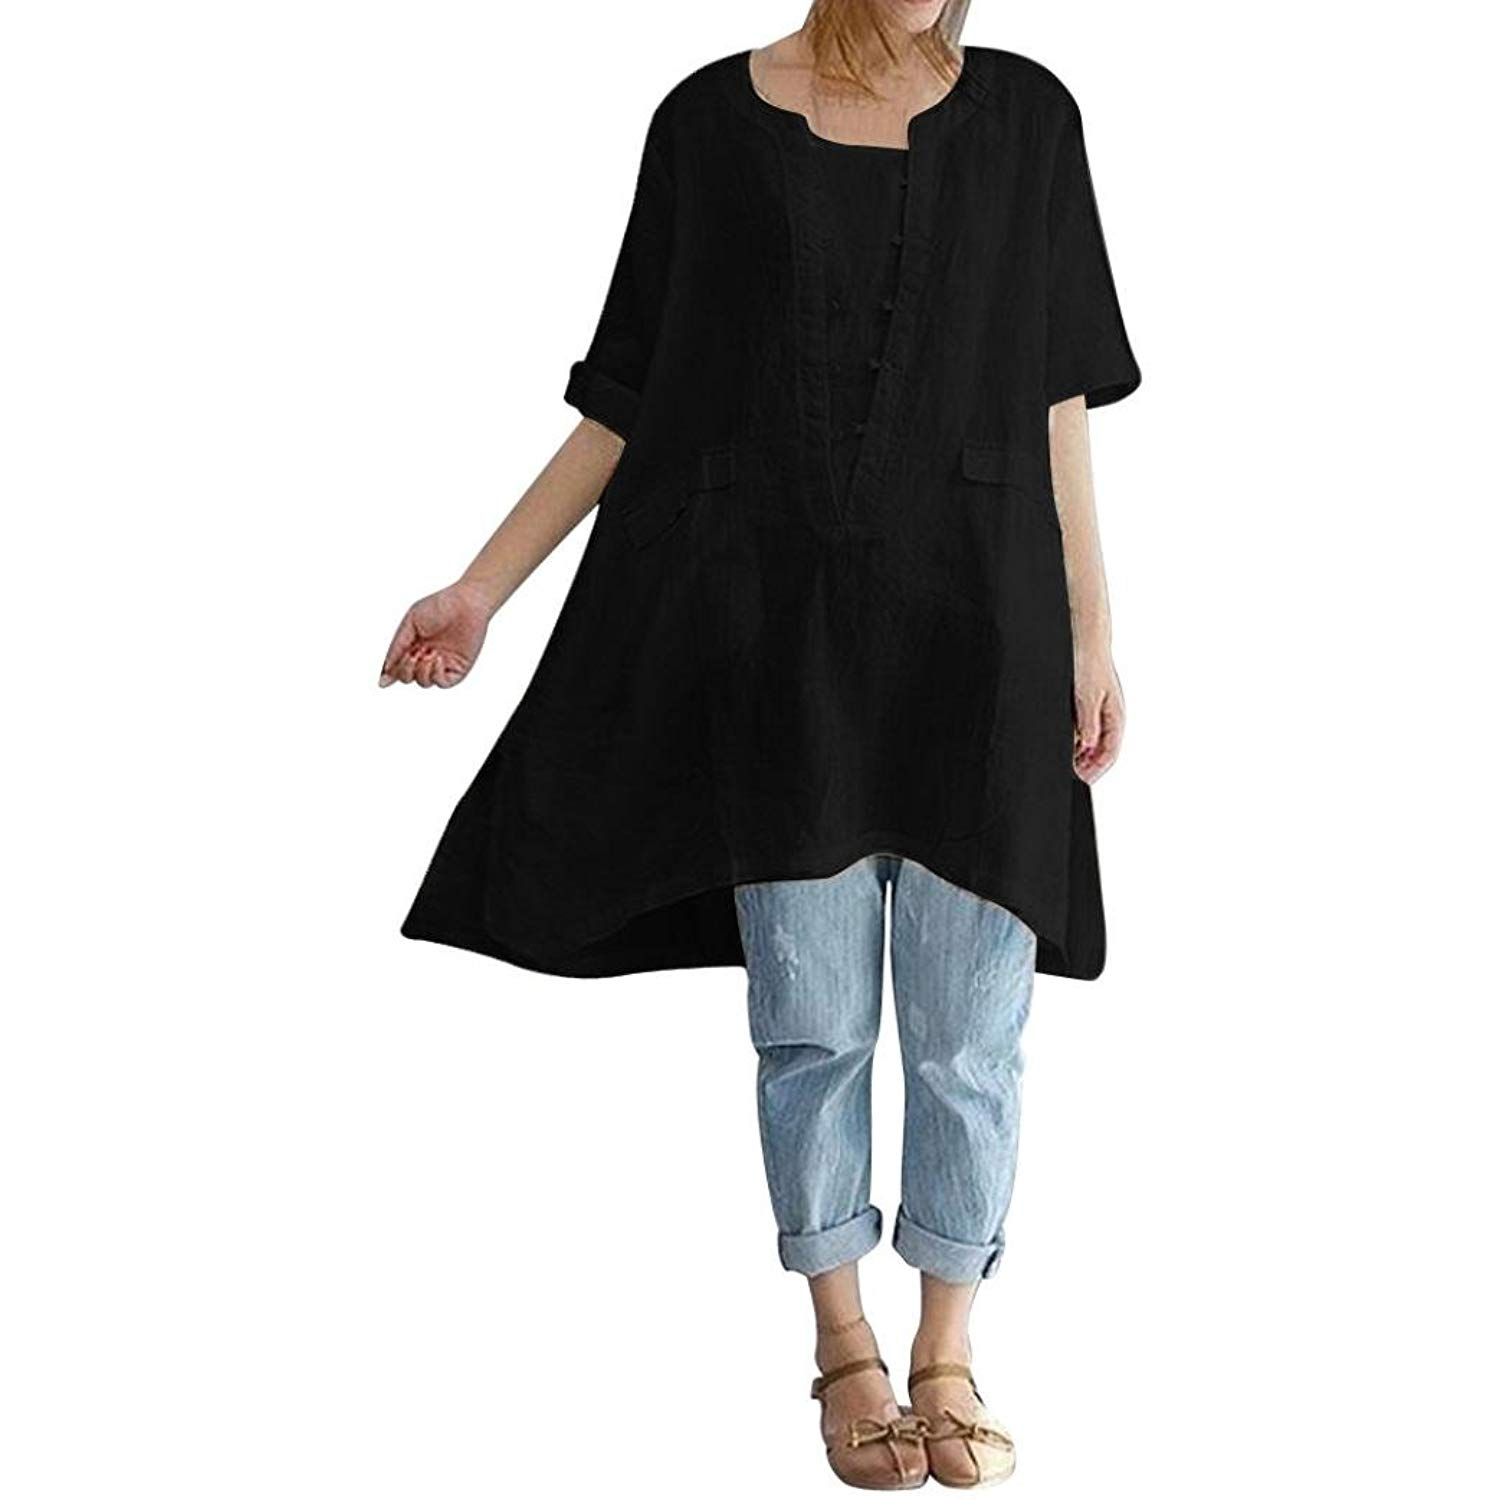 fa7593e3ff9b07 Get Quotations · Misaky Plus Size Women's Irregular Fashion Loose Short  Sleeved Linen Shirts Loose Long Tunic Tops for